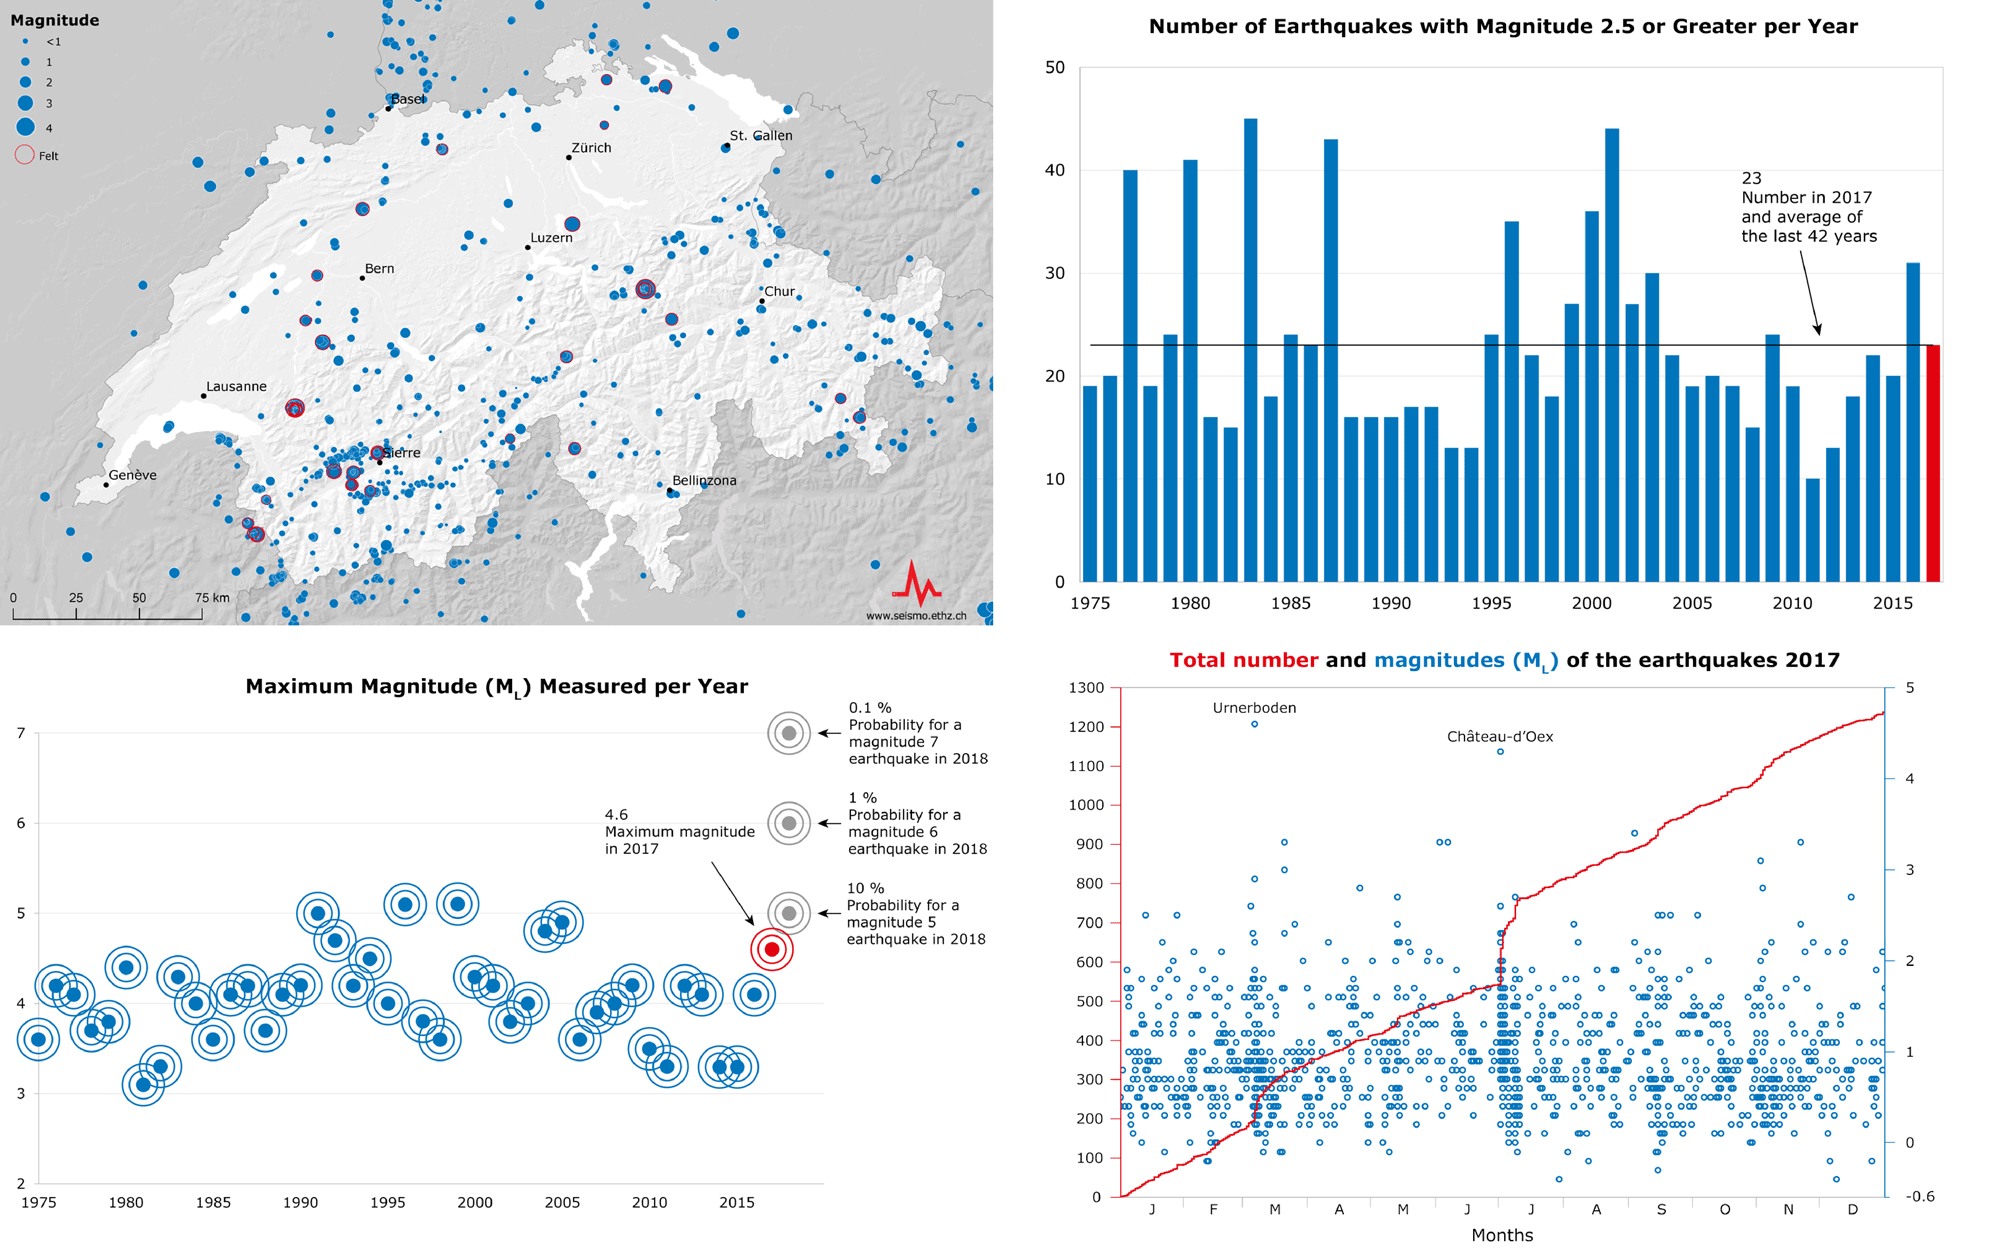 Earthquakes in Switzerland in 2017: an overview